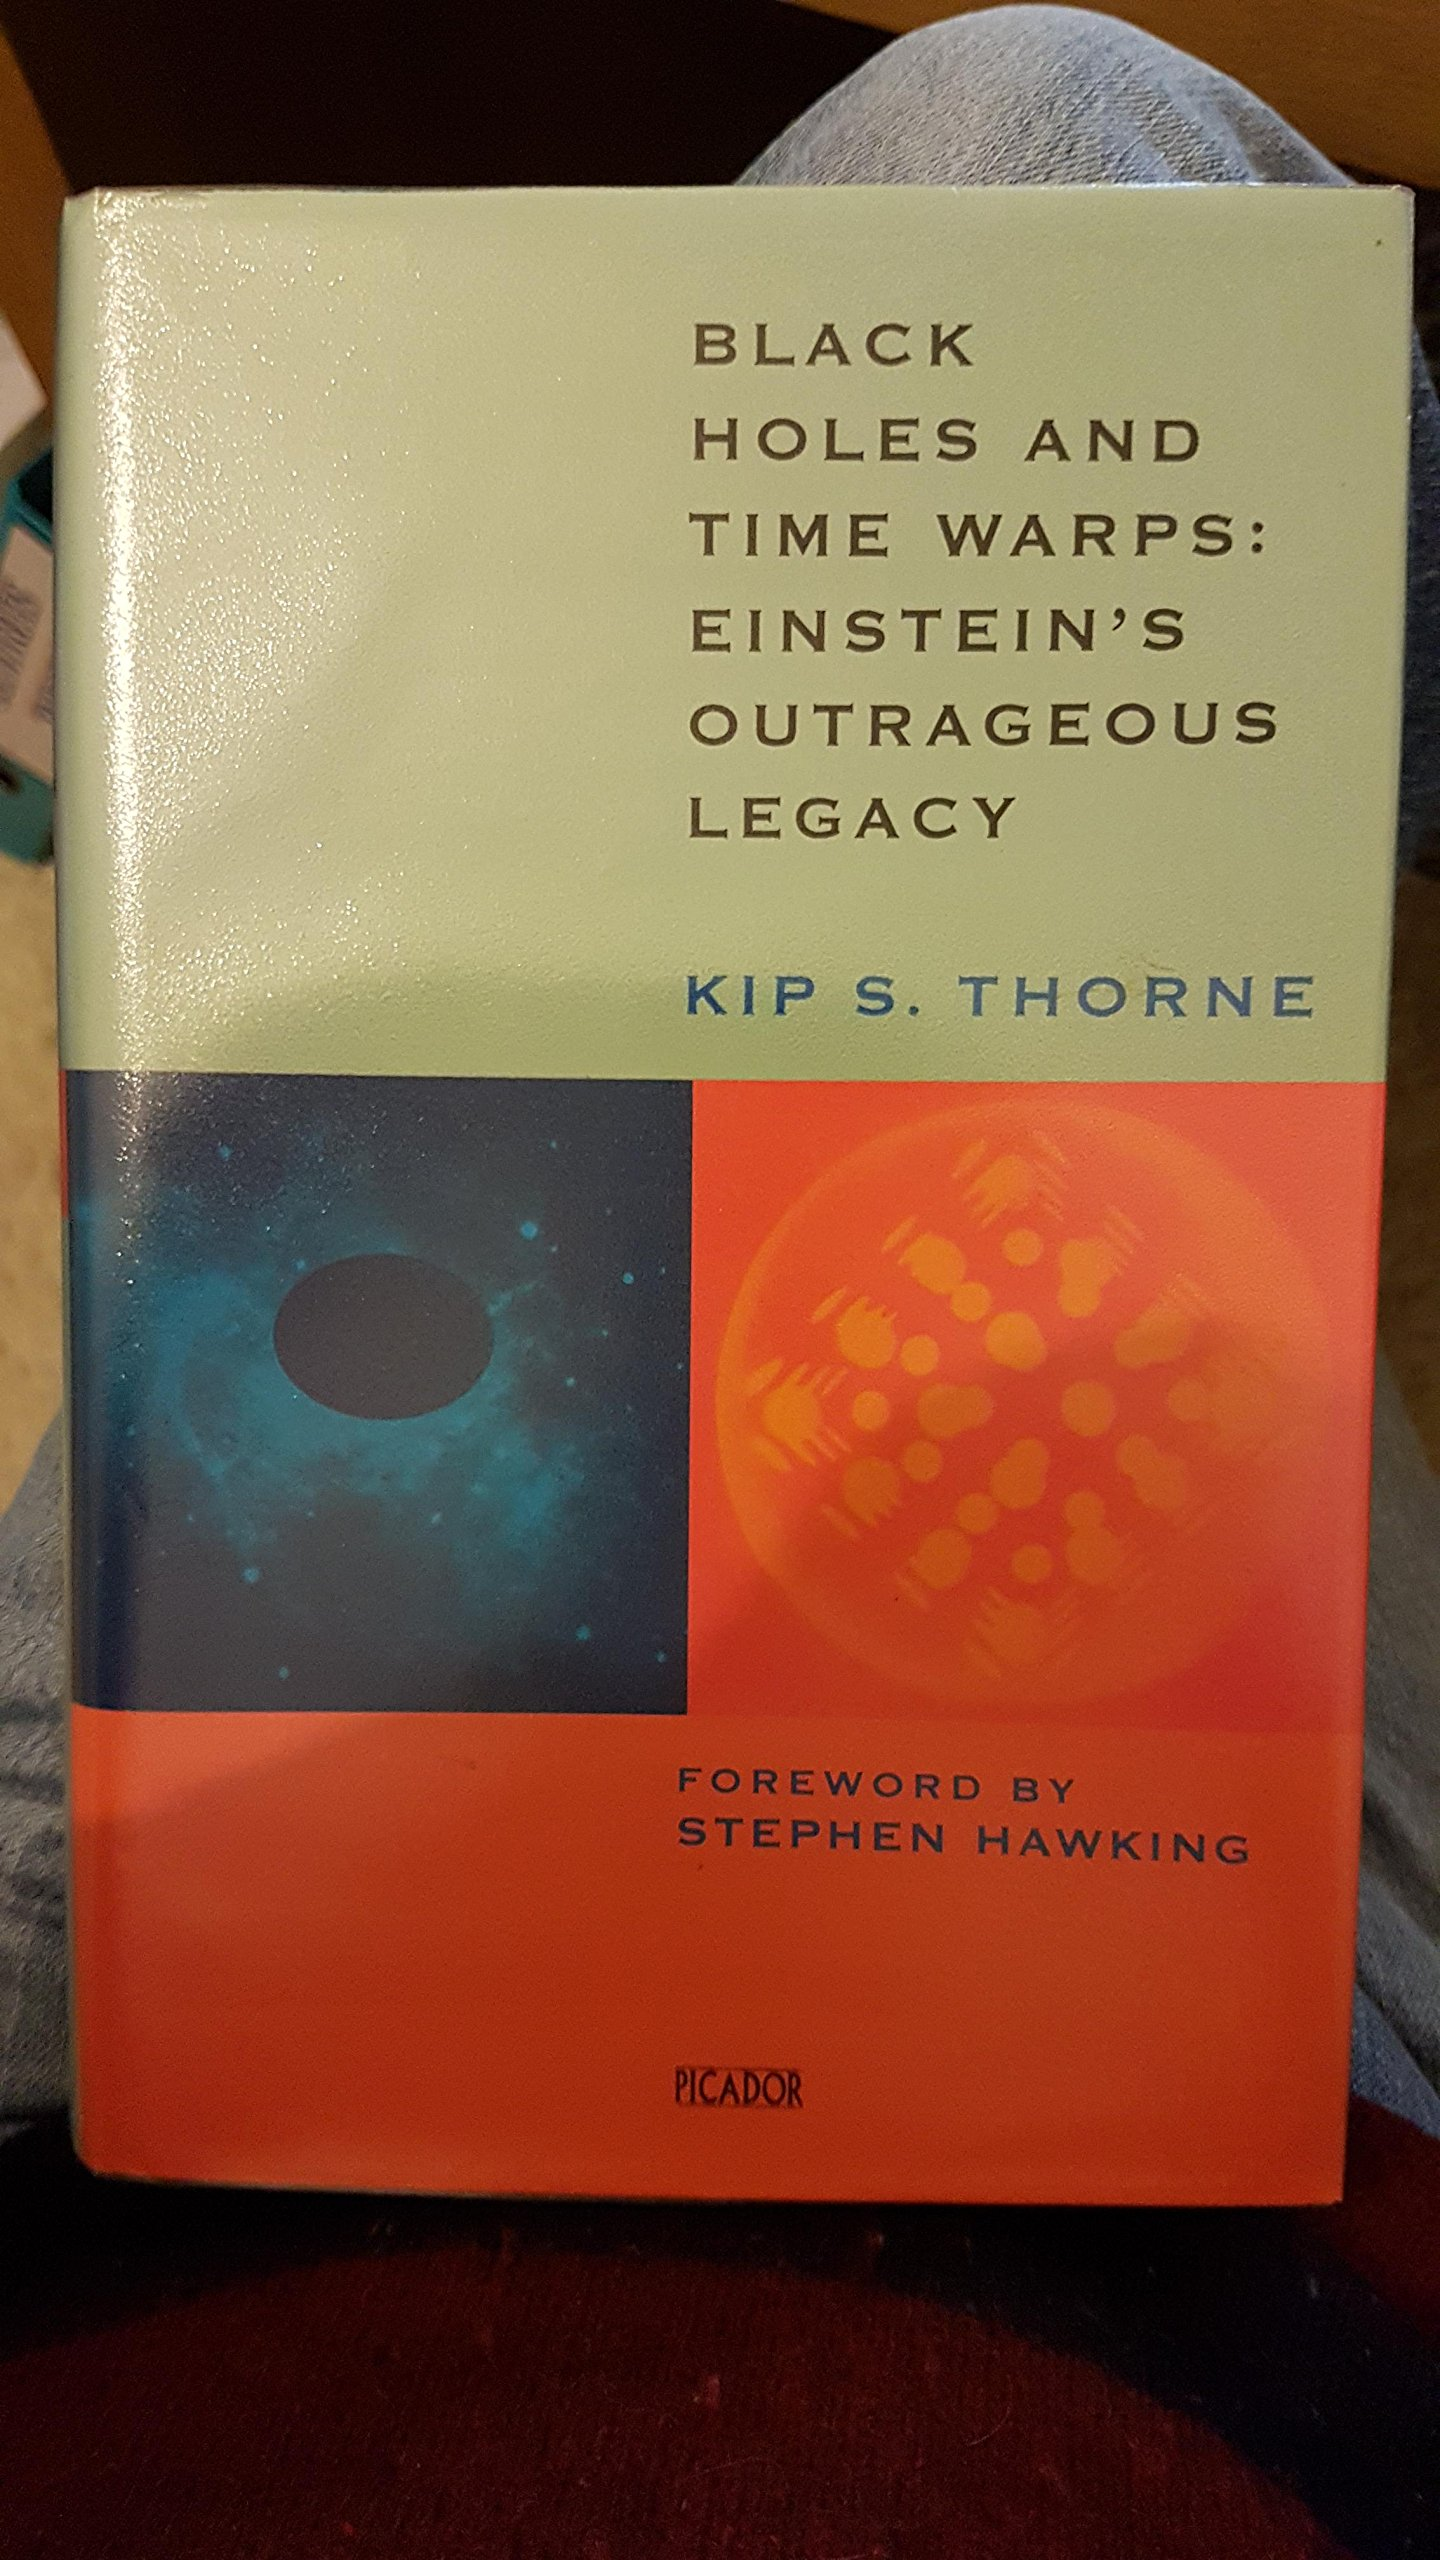 Black Holes and Time Warps: Einsteins Outrageous Legacy: Amazon.es: Kip S. Thorne: Libros en idiomas extranjeros